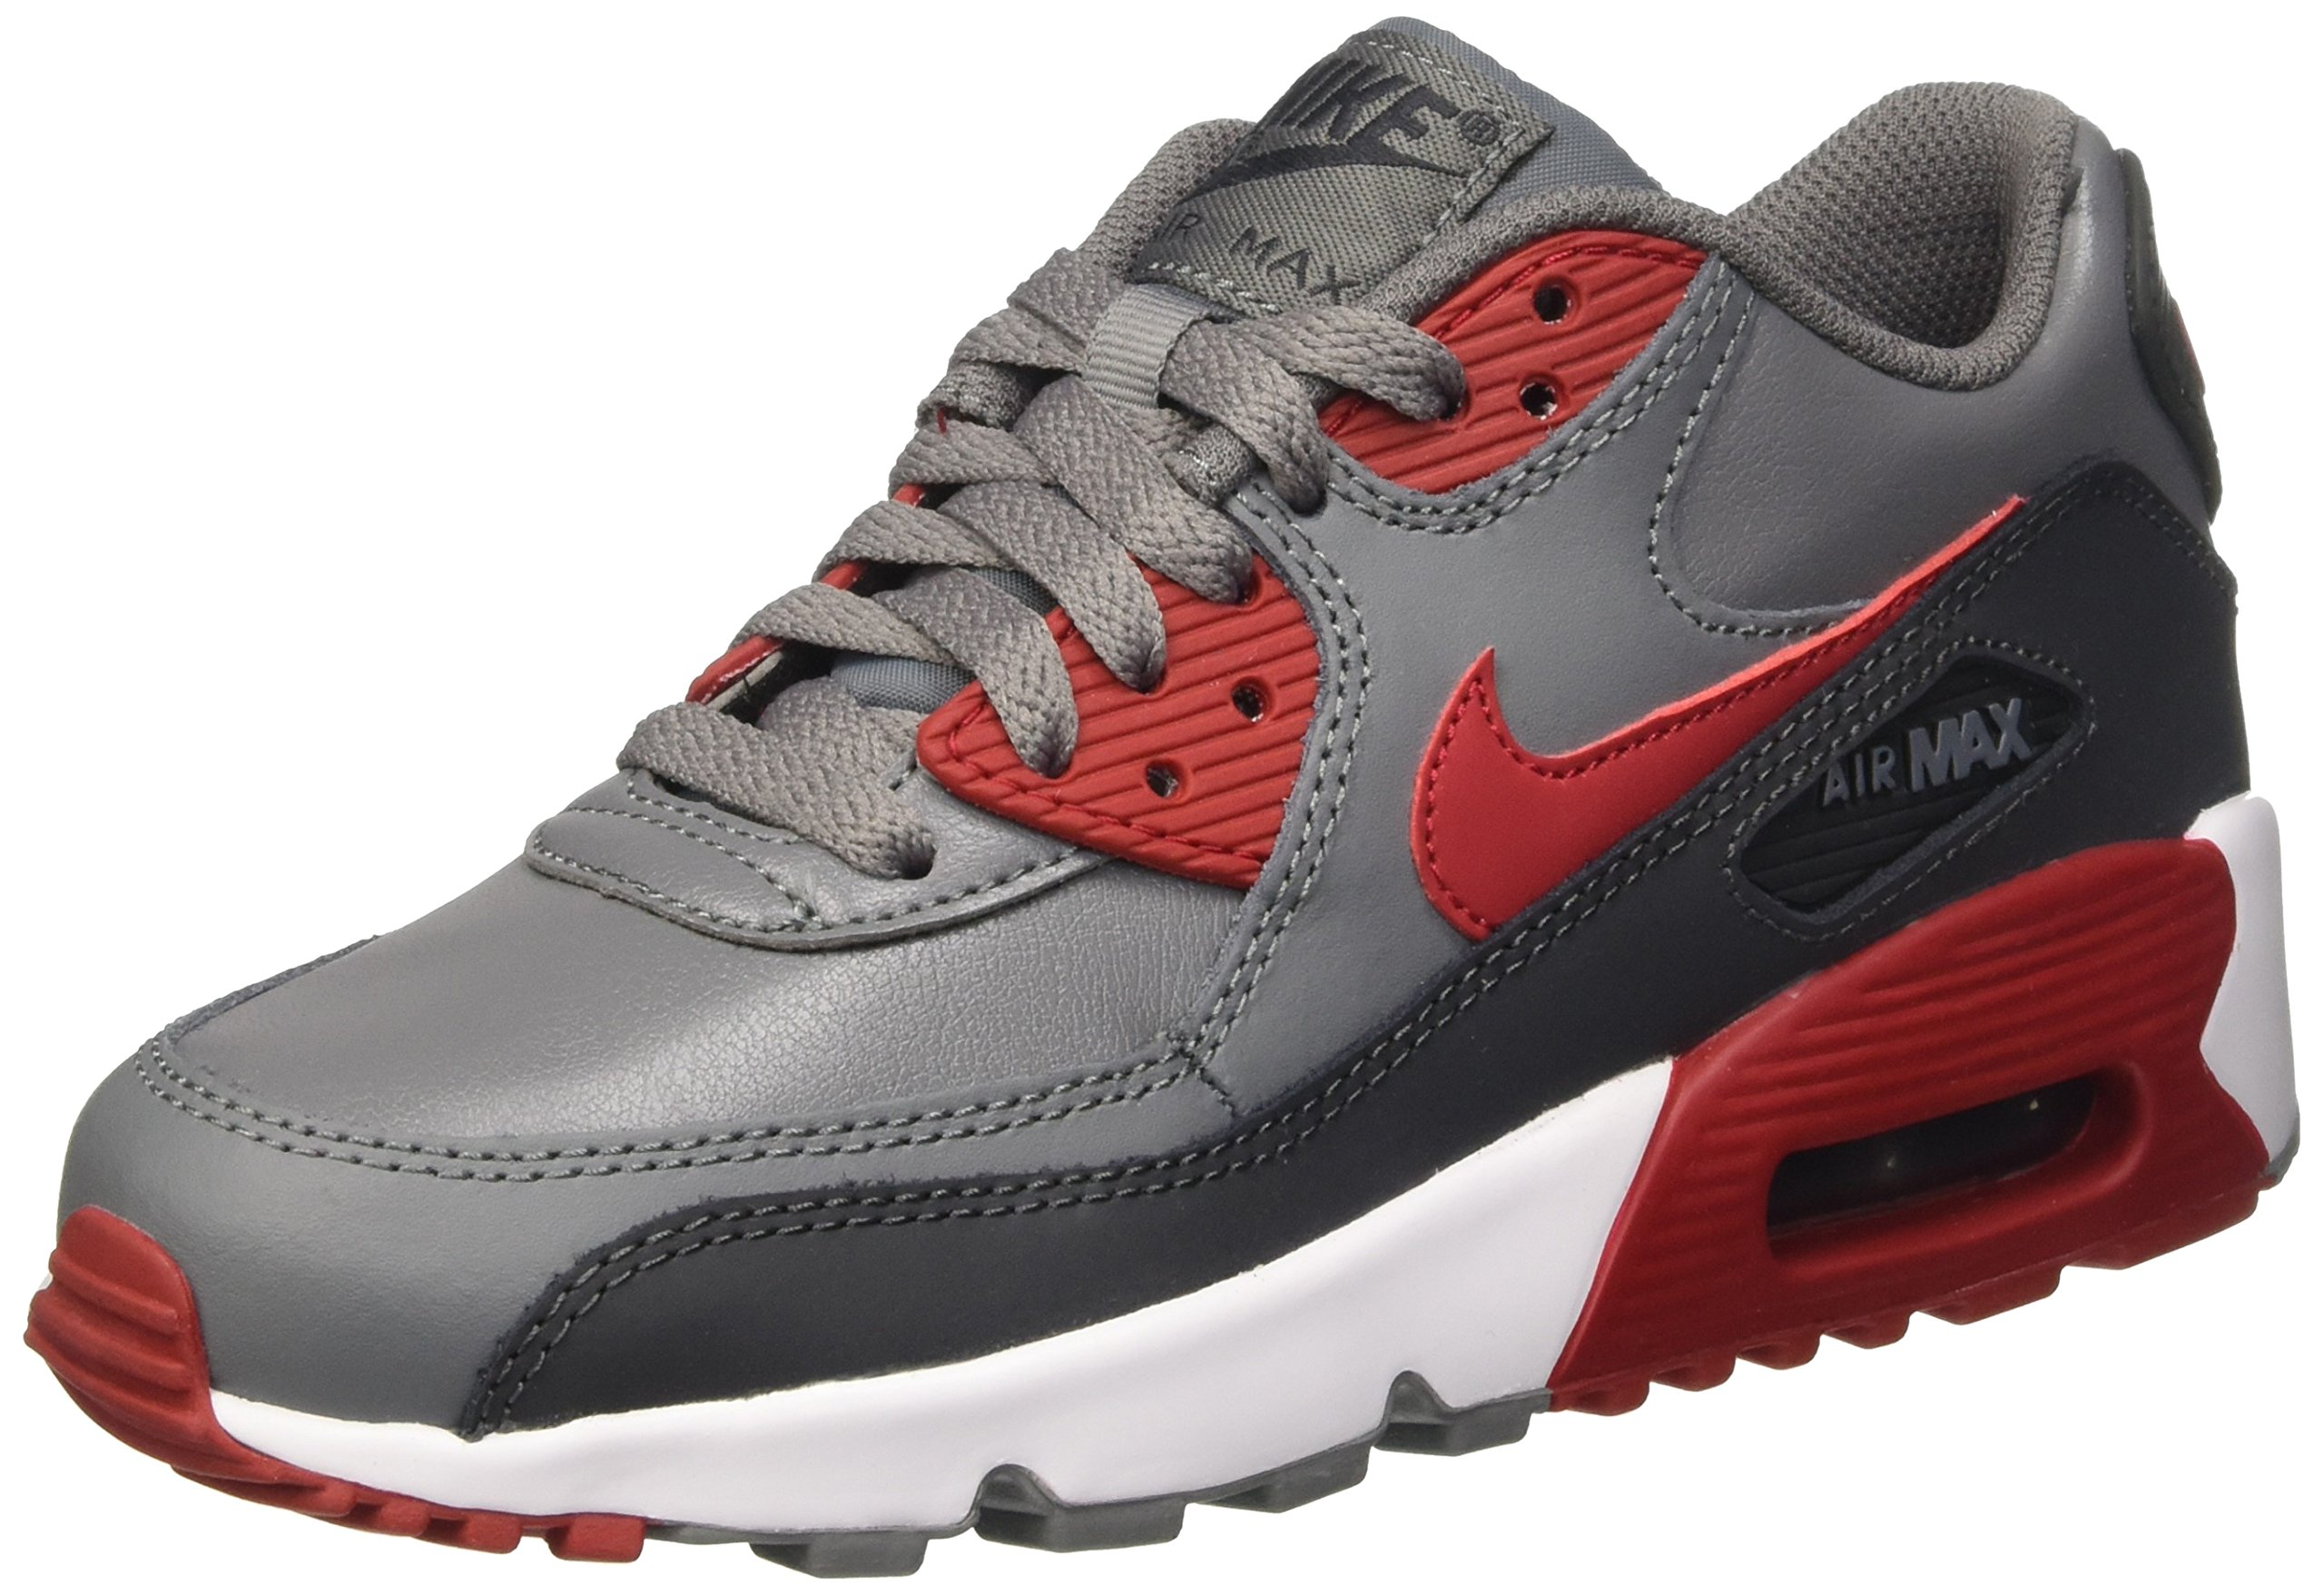 Nike 833412-007 Kid's Air Max 90 Leather Running Shoes, Cool Gray/Gym Red/Anthracite, 4.5 M US Big Kid